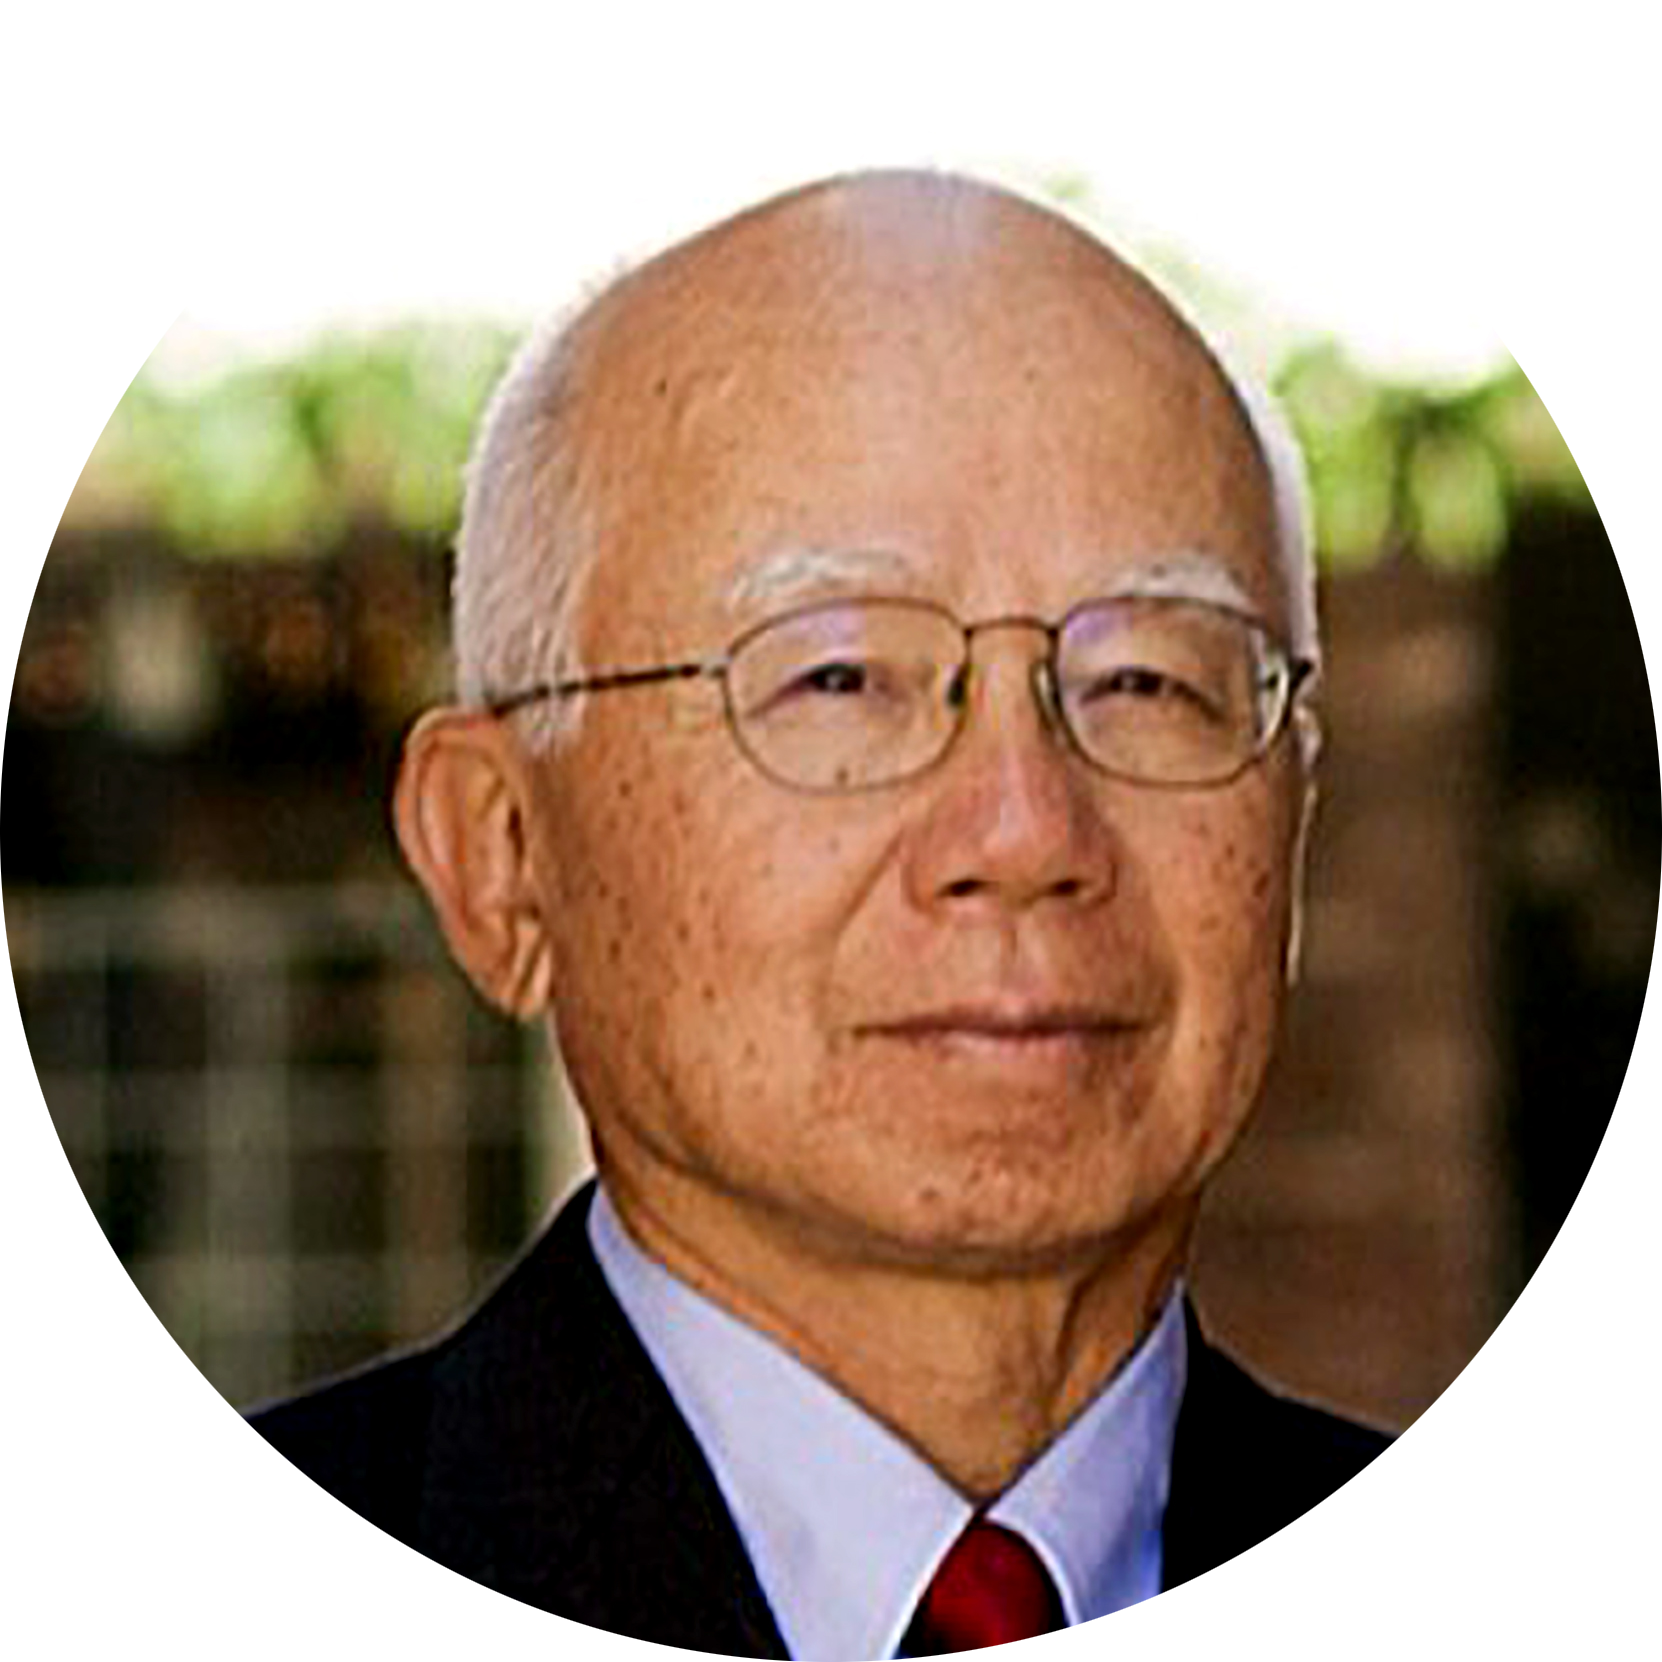 Mr. Wai Szeto